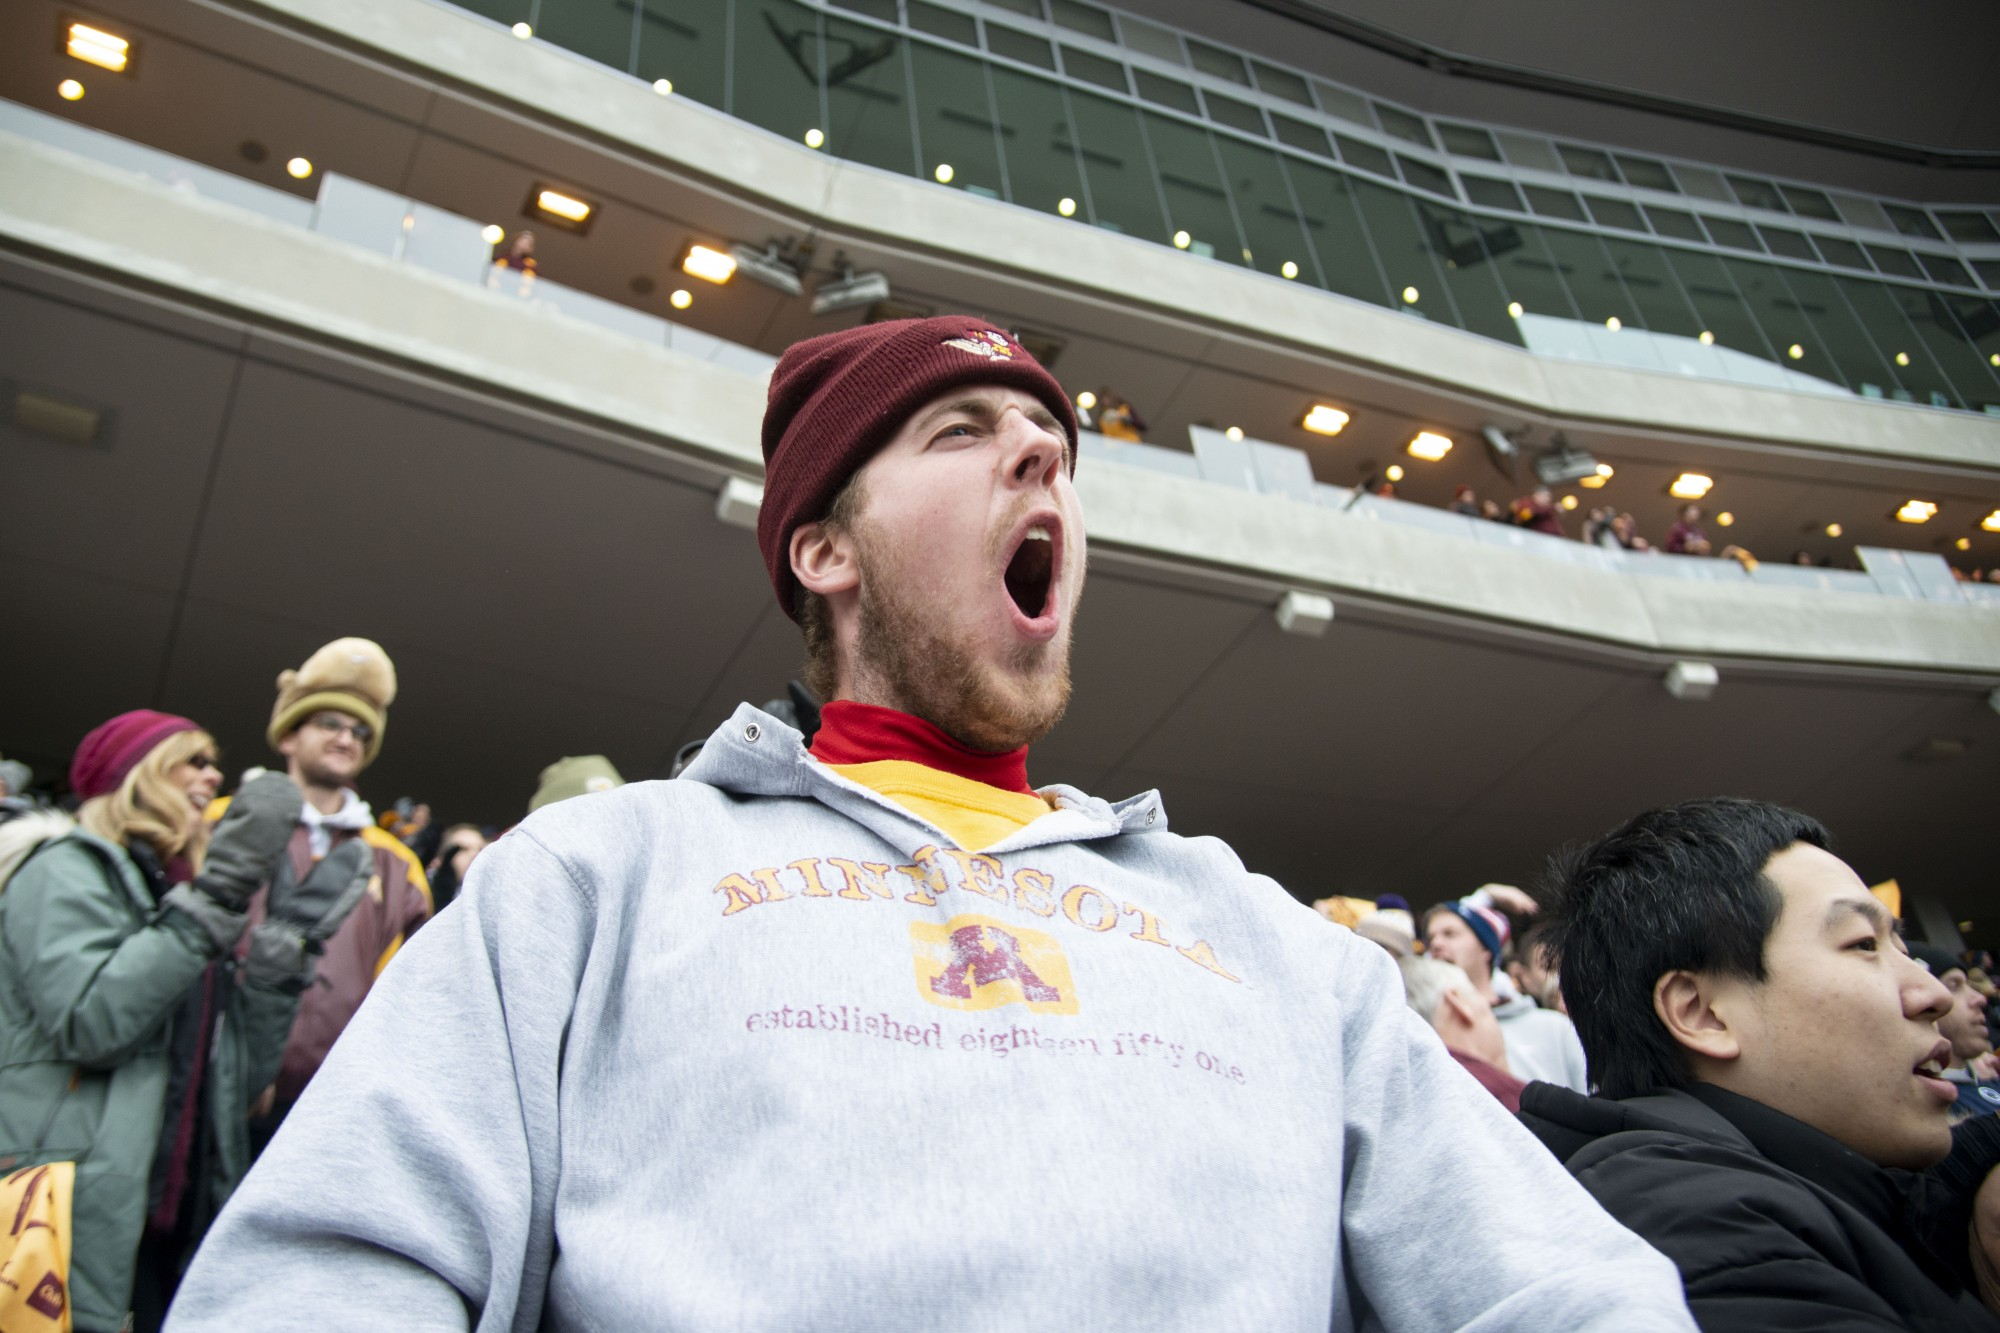 A fan cheers for the Gophers during the game against Penn State at TCF Bank Stadium Saturday, Nov. 9. The Gophers won 31-26 bringing their record to 9-0. A first since 1904.